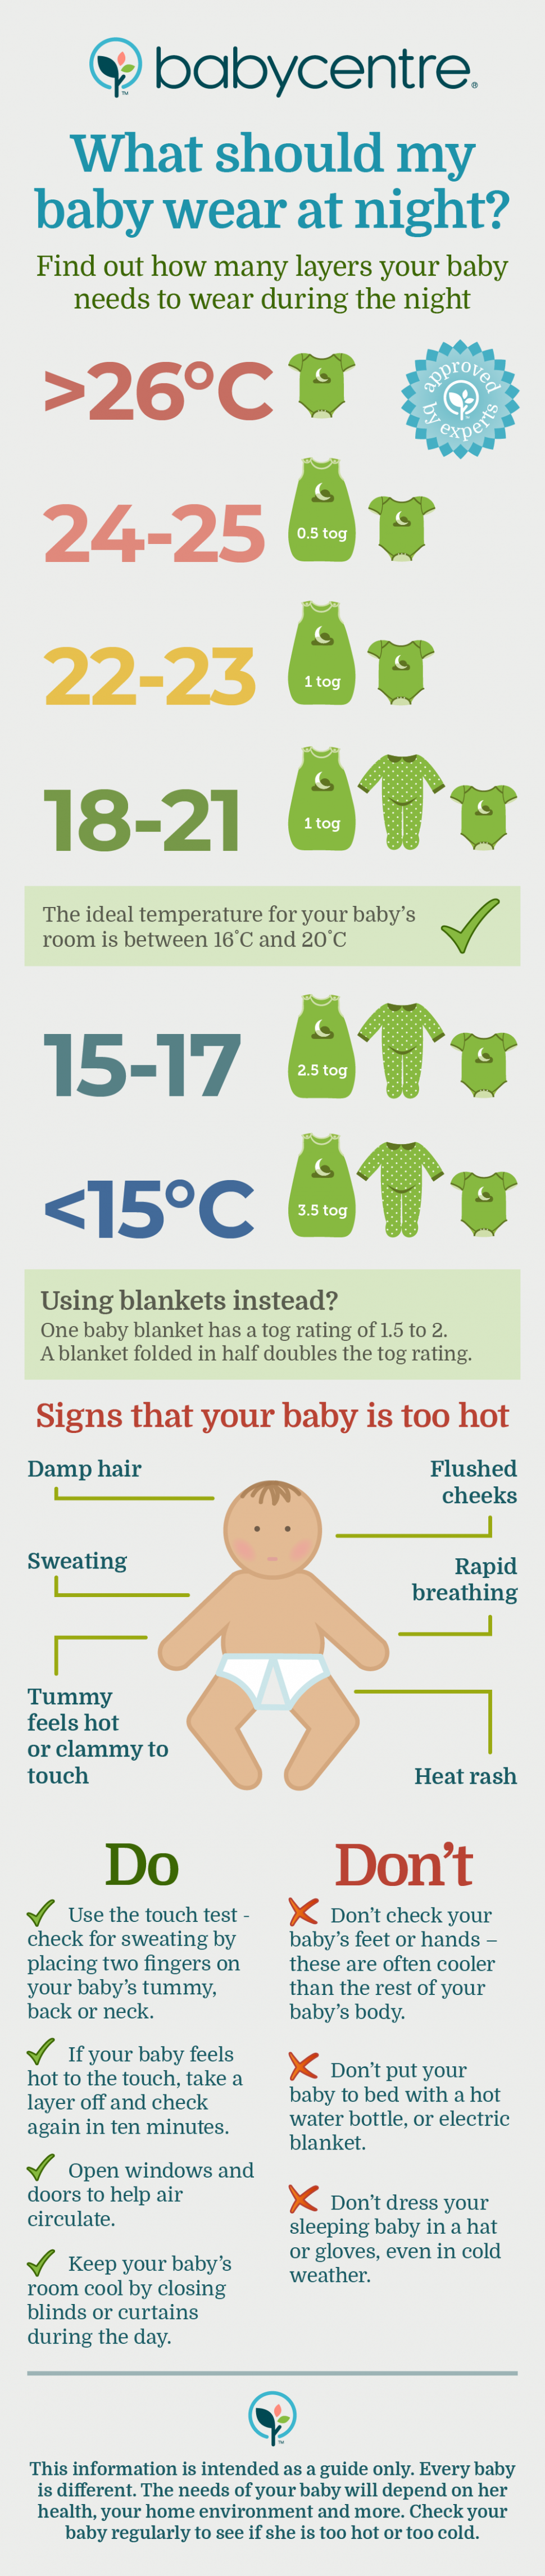 What should my baby wear at night? (Infographic) - BabyCentre UK - Baby Room Temp